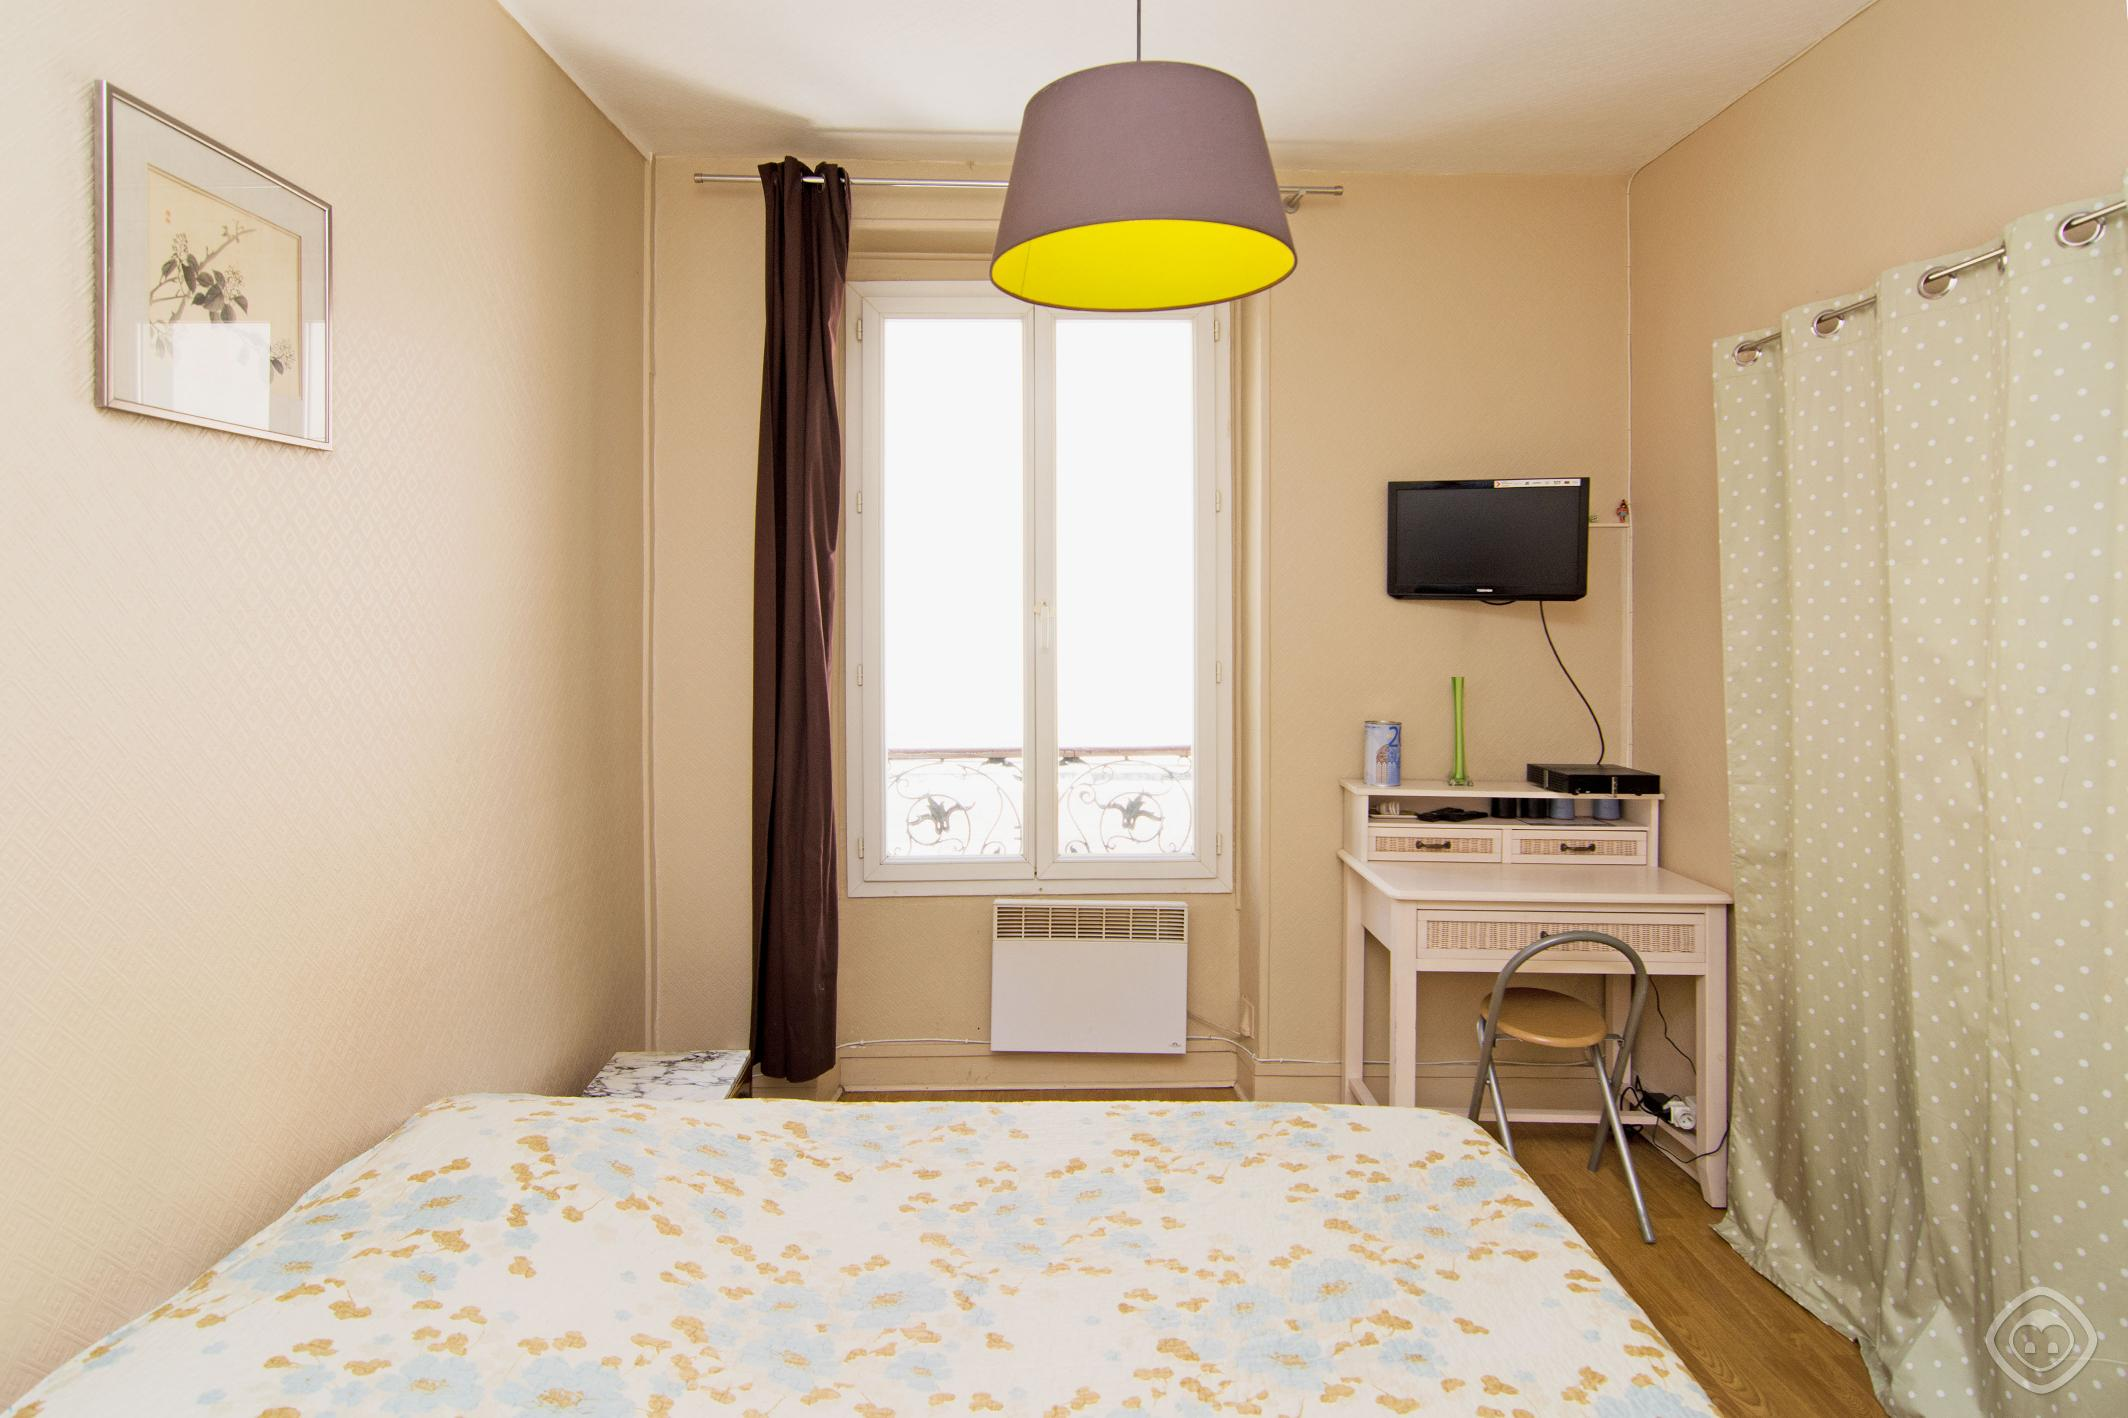 La Villette studio Paris photo 31817261